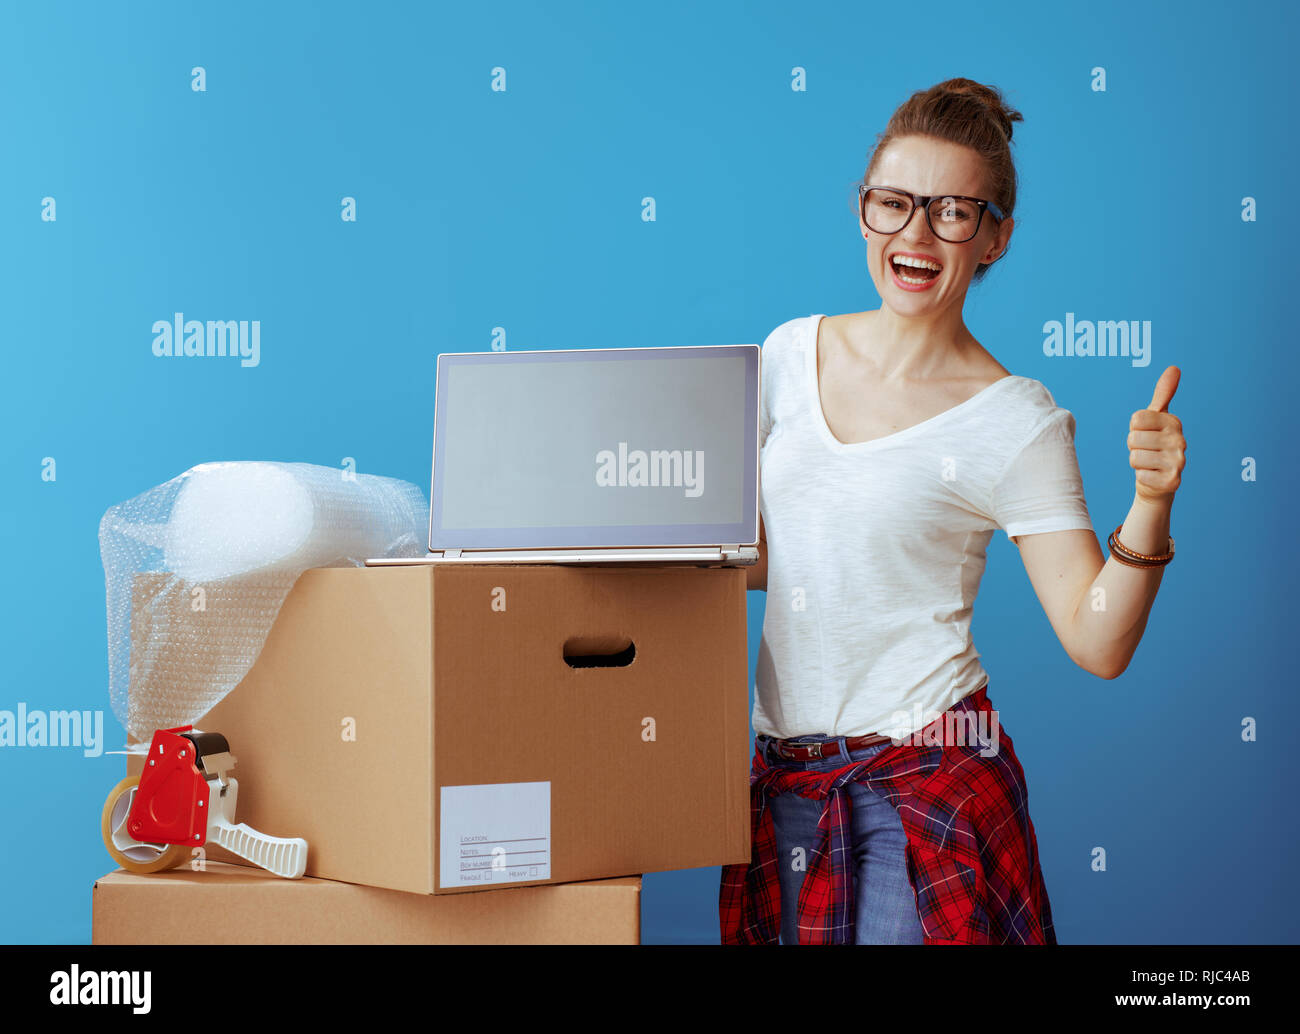 smiling modern woman in white t-shirt near cardboard box showing laptop blank screen and thumbs up on blue background - Stock Image